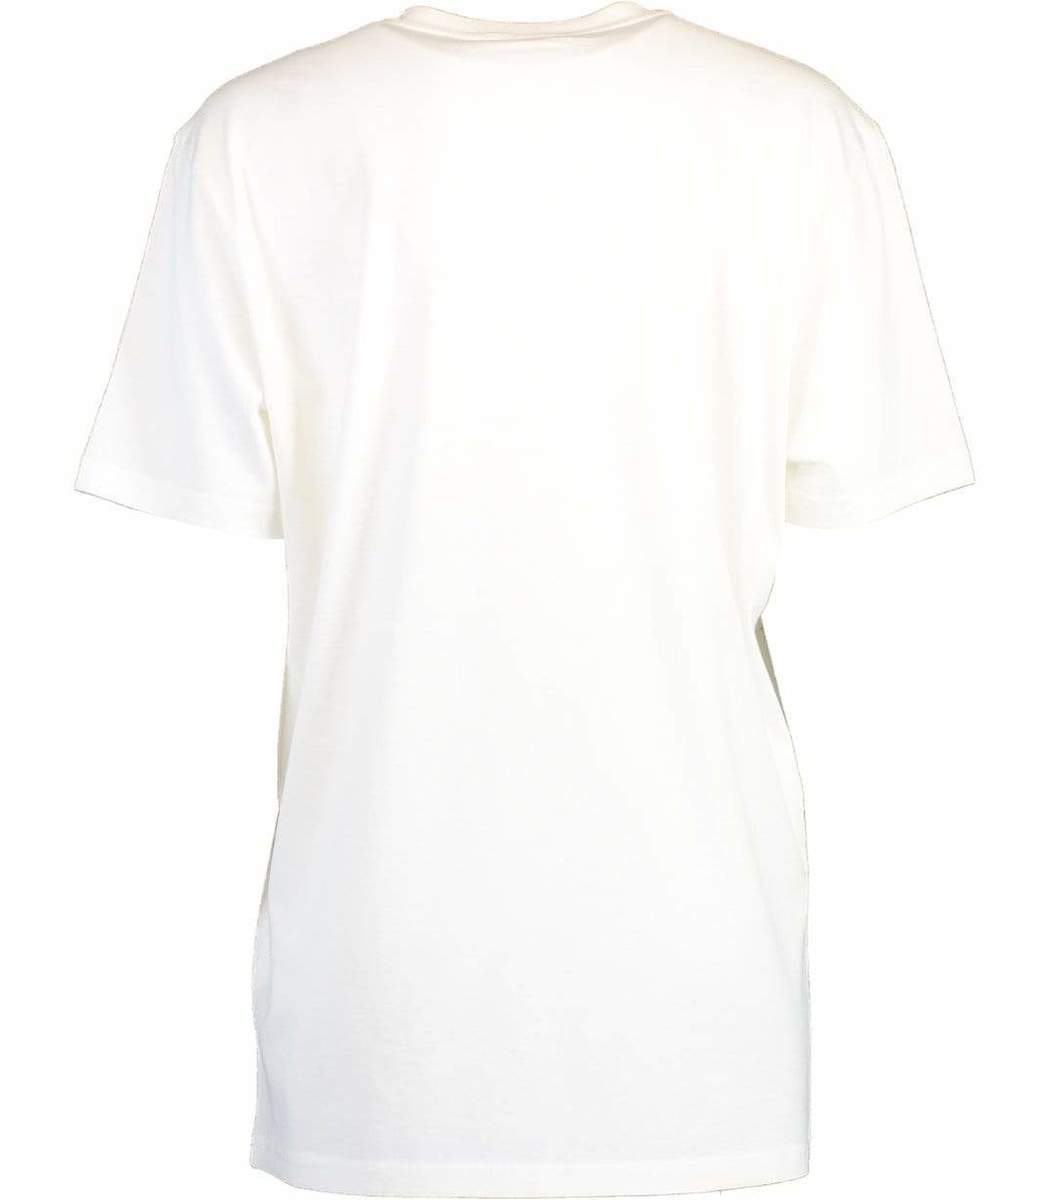 GIVENCHY Cottons Givenchy Island Oversized T-Shirt